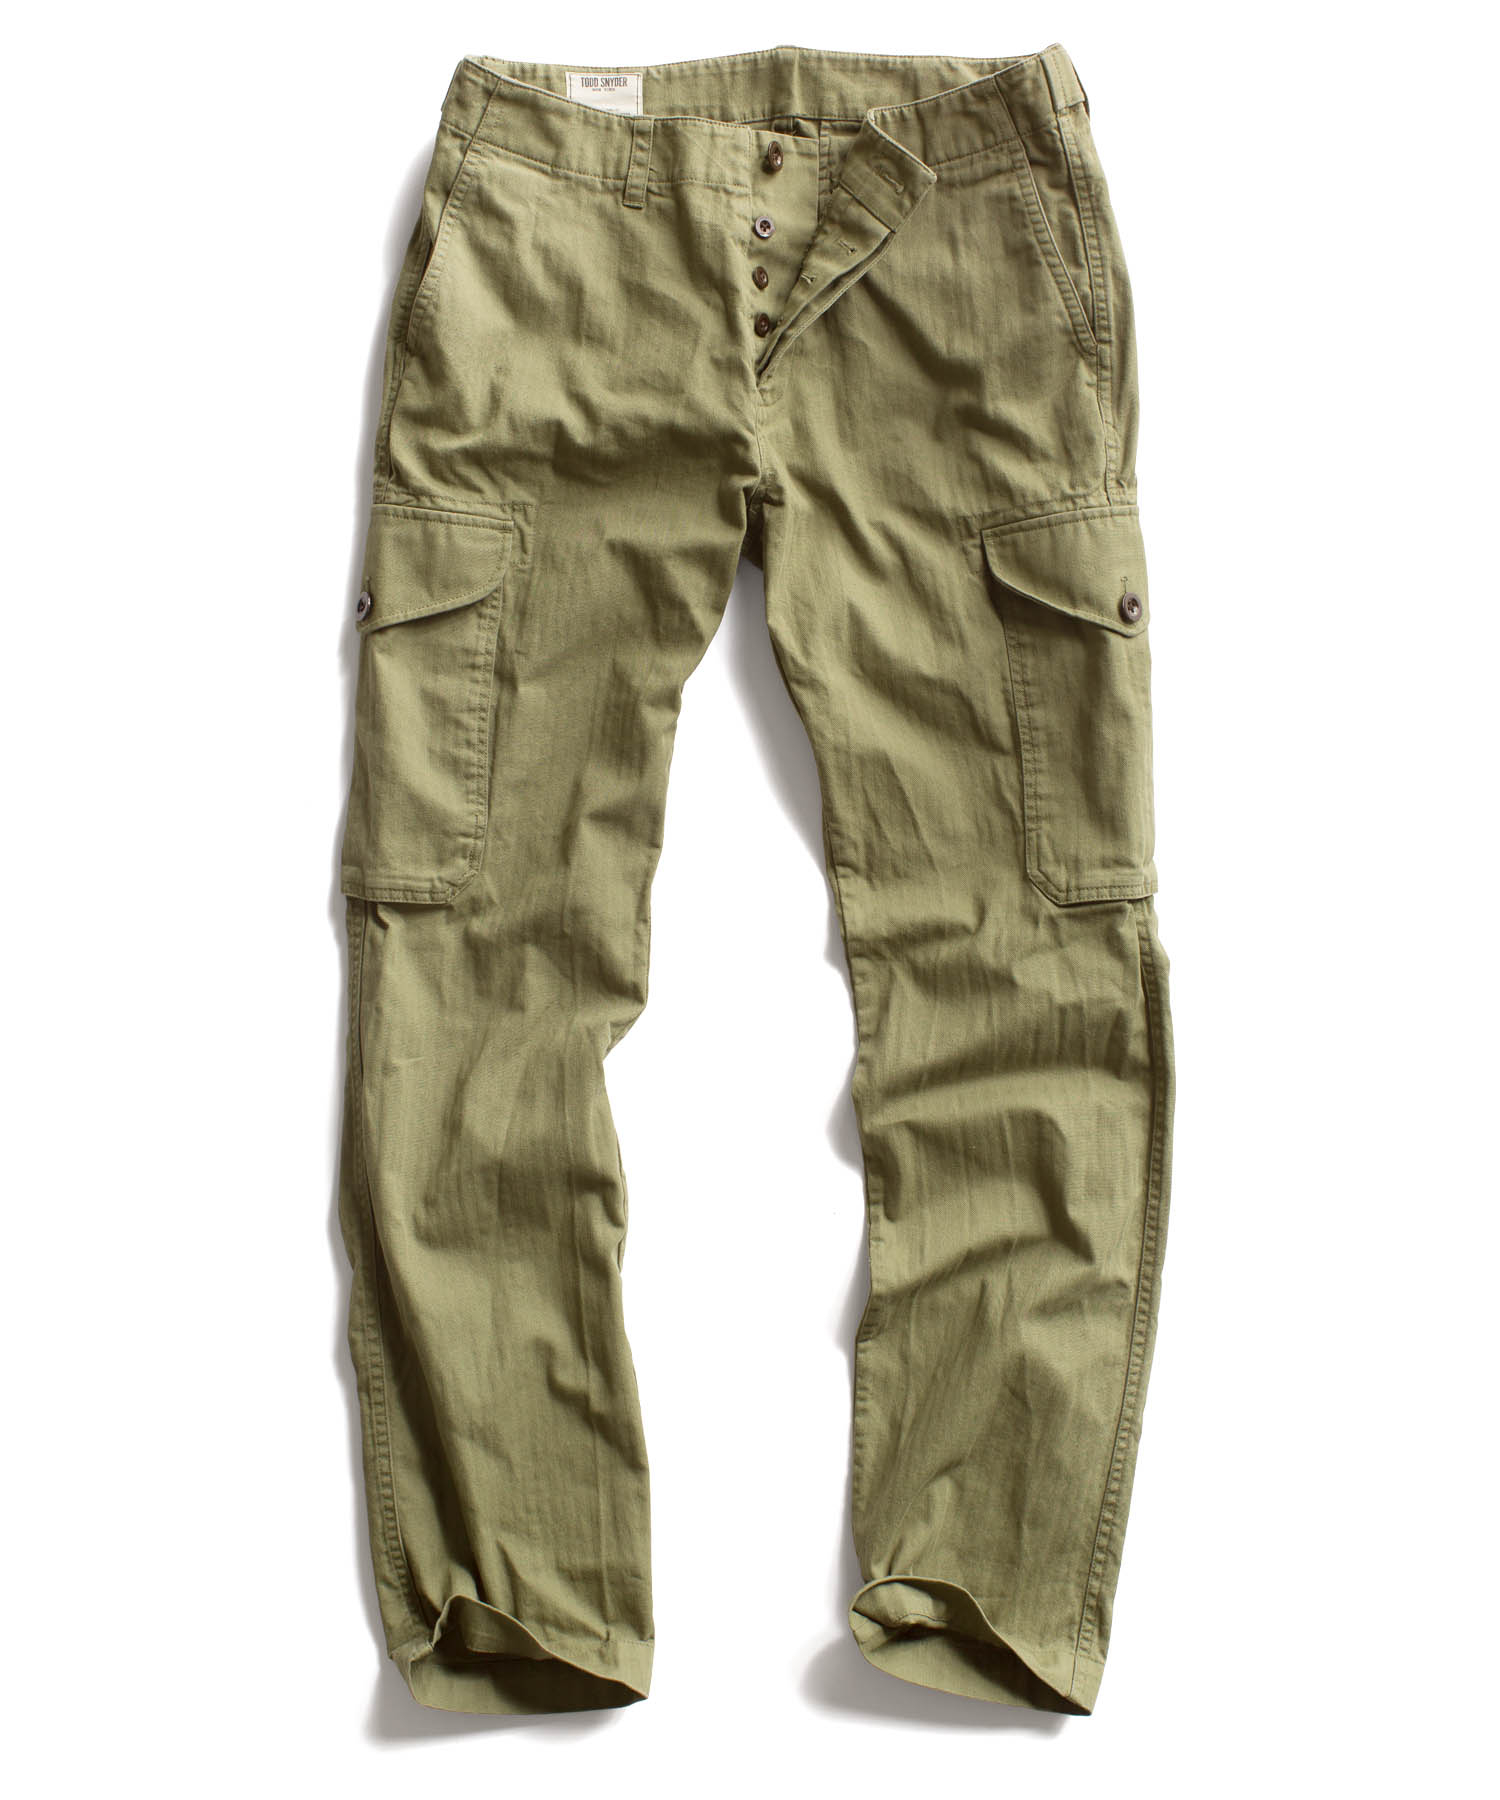 Free shipping BOTH ways on mens olive green cargo shorts, from our vast selection of styles. Fast delivery, and 24/7/ real-person service with a smile. Click or call